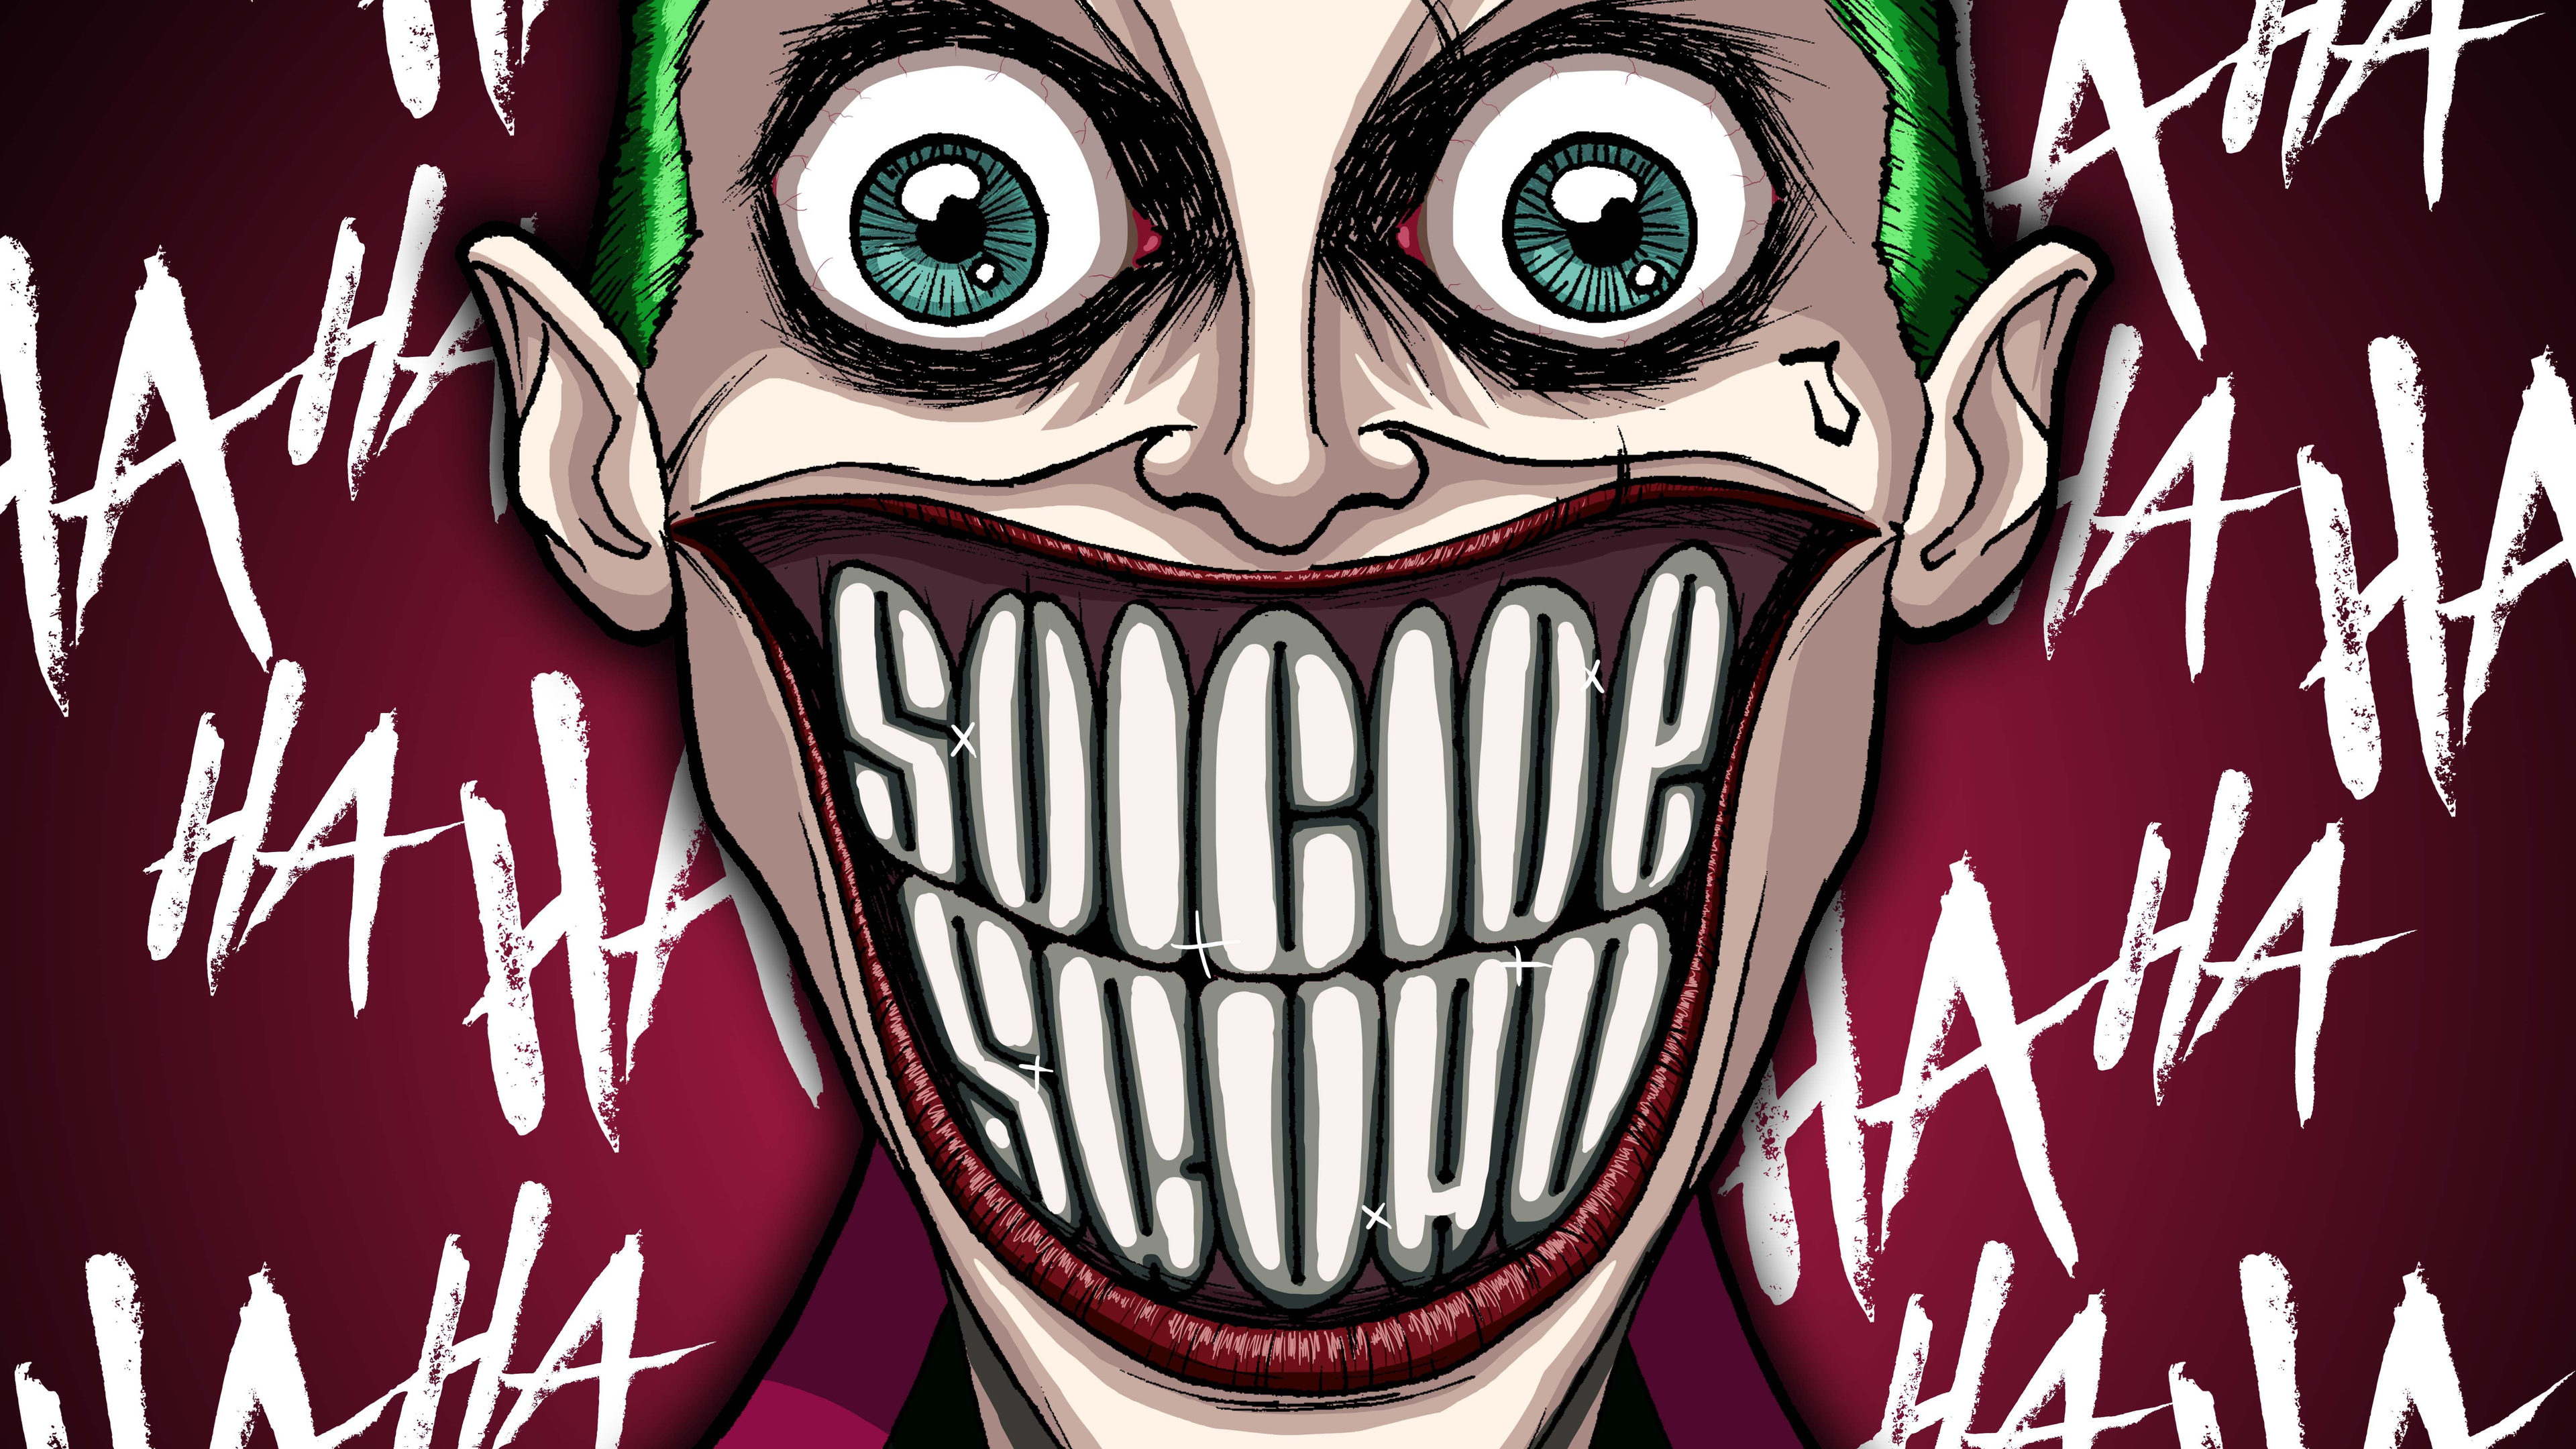 joker damaged 4k 1547936498 - Joker Damaged 4k - supervillain wallpapers, superheroes wallpapers, joker wallpapers, hd-wallpapers, digital art wallpapers, artwork wallpapers, artist wallpapers, 5k wallpapers, 4k-wallpapers